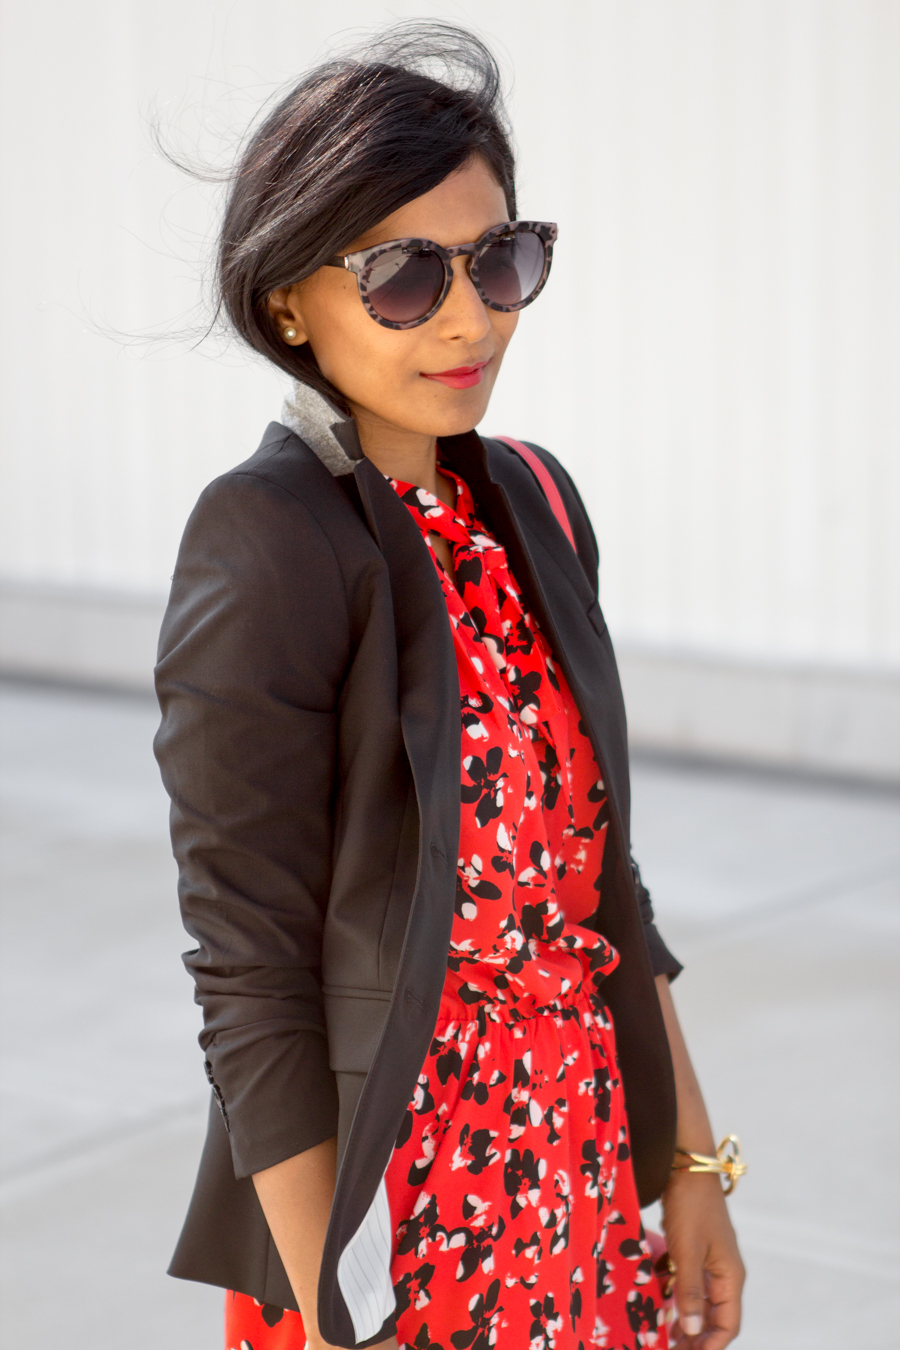 work outfit, work style, office style, little red dress, pullover, tieneck, floral, summer style, petite fashion, work to drinks, banana republic, versatile, blazer, red bag, tortoiseshell sunglasses, trendy, affordable style, personal stylist, boston style